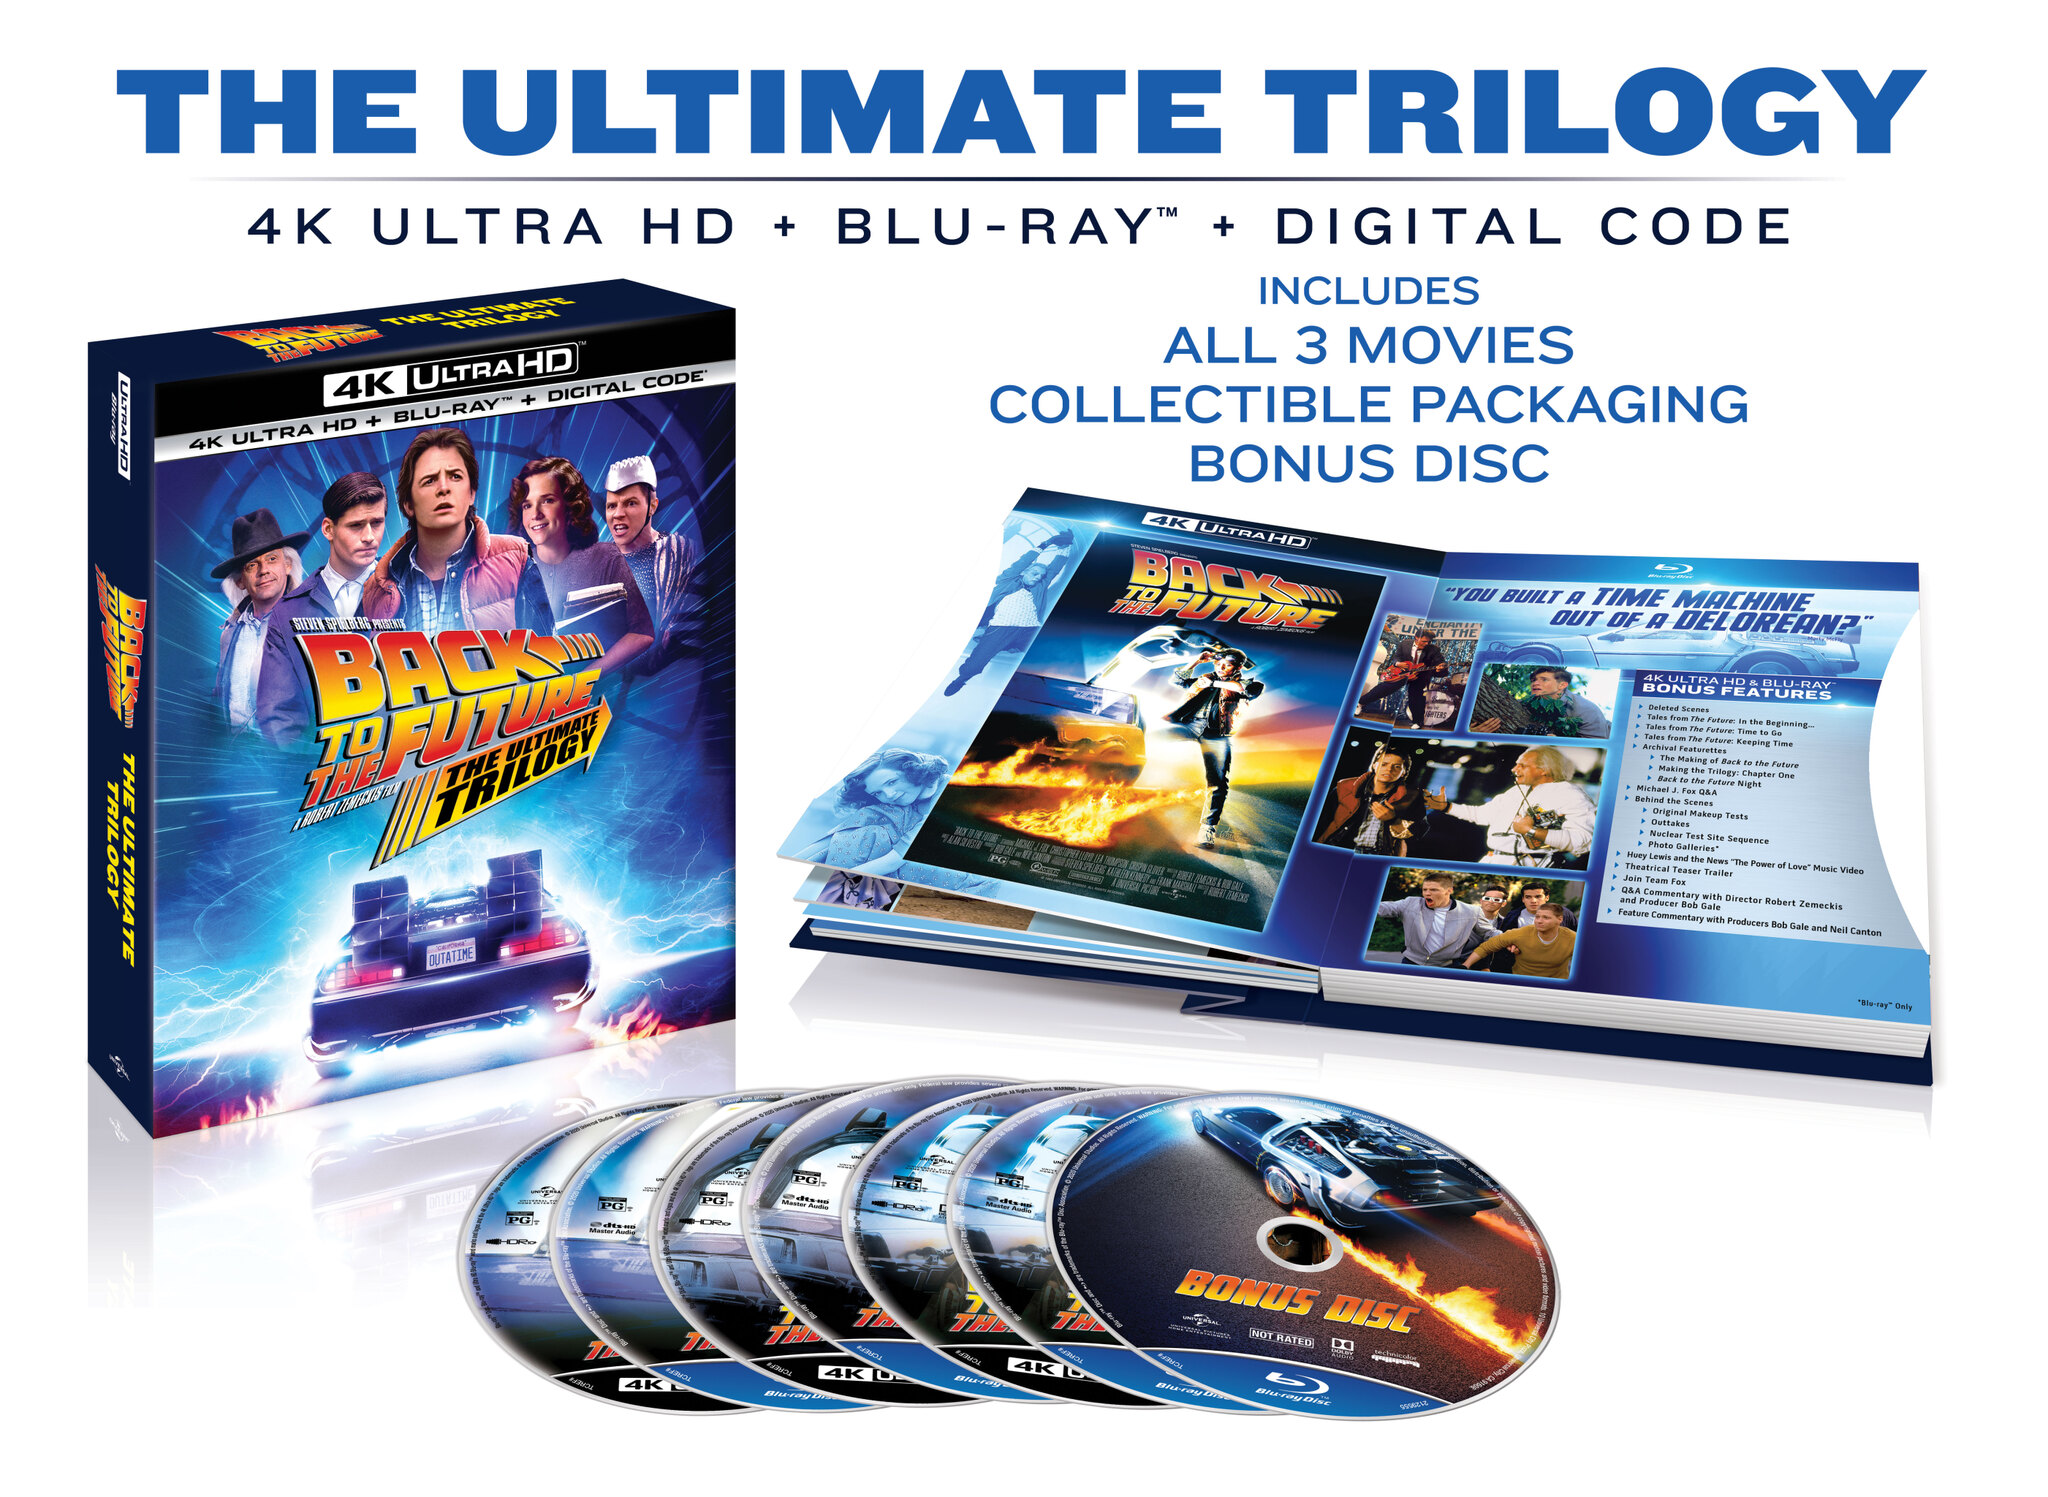 [Giveaway] Enter for a Chance to Win A Blu-ray of BACK TO THE FUTURE: THE ULTIMATE TRILOGY